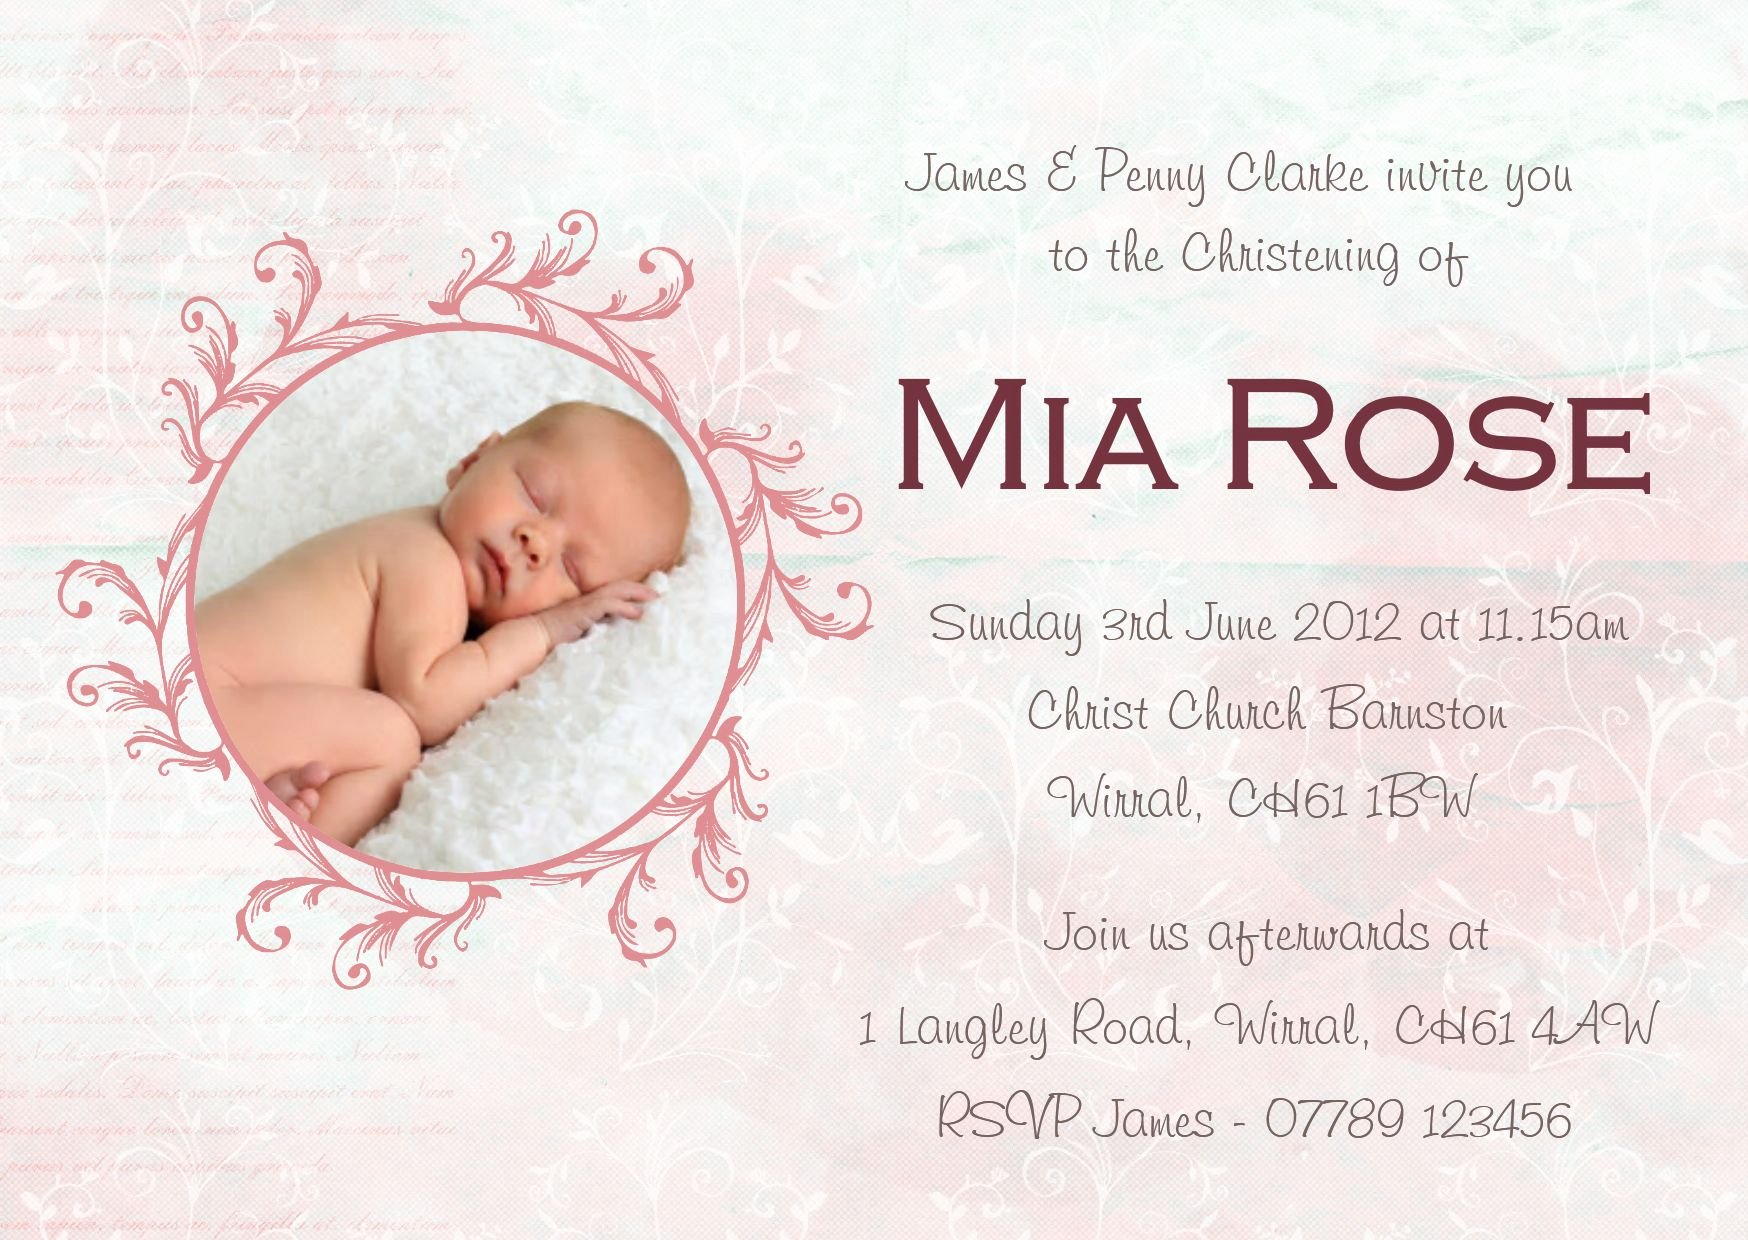 Baptism Invitation Template Free Download Beautiful Baptism Invitation Card Baptism Invitation Cards